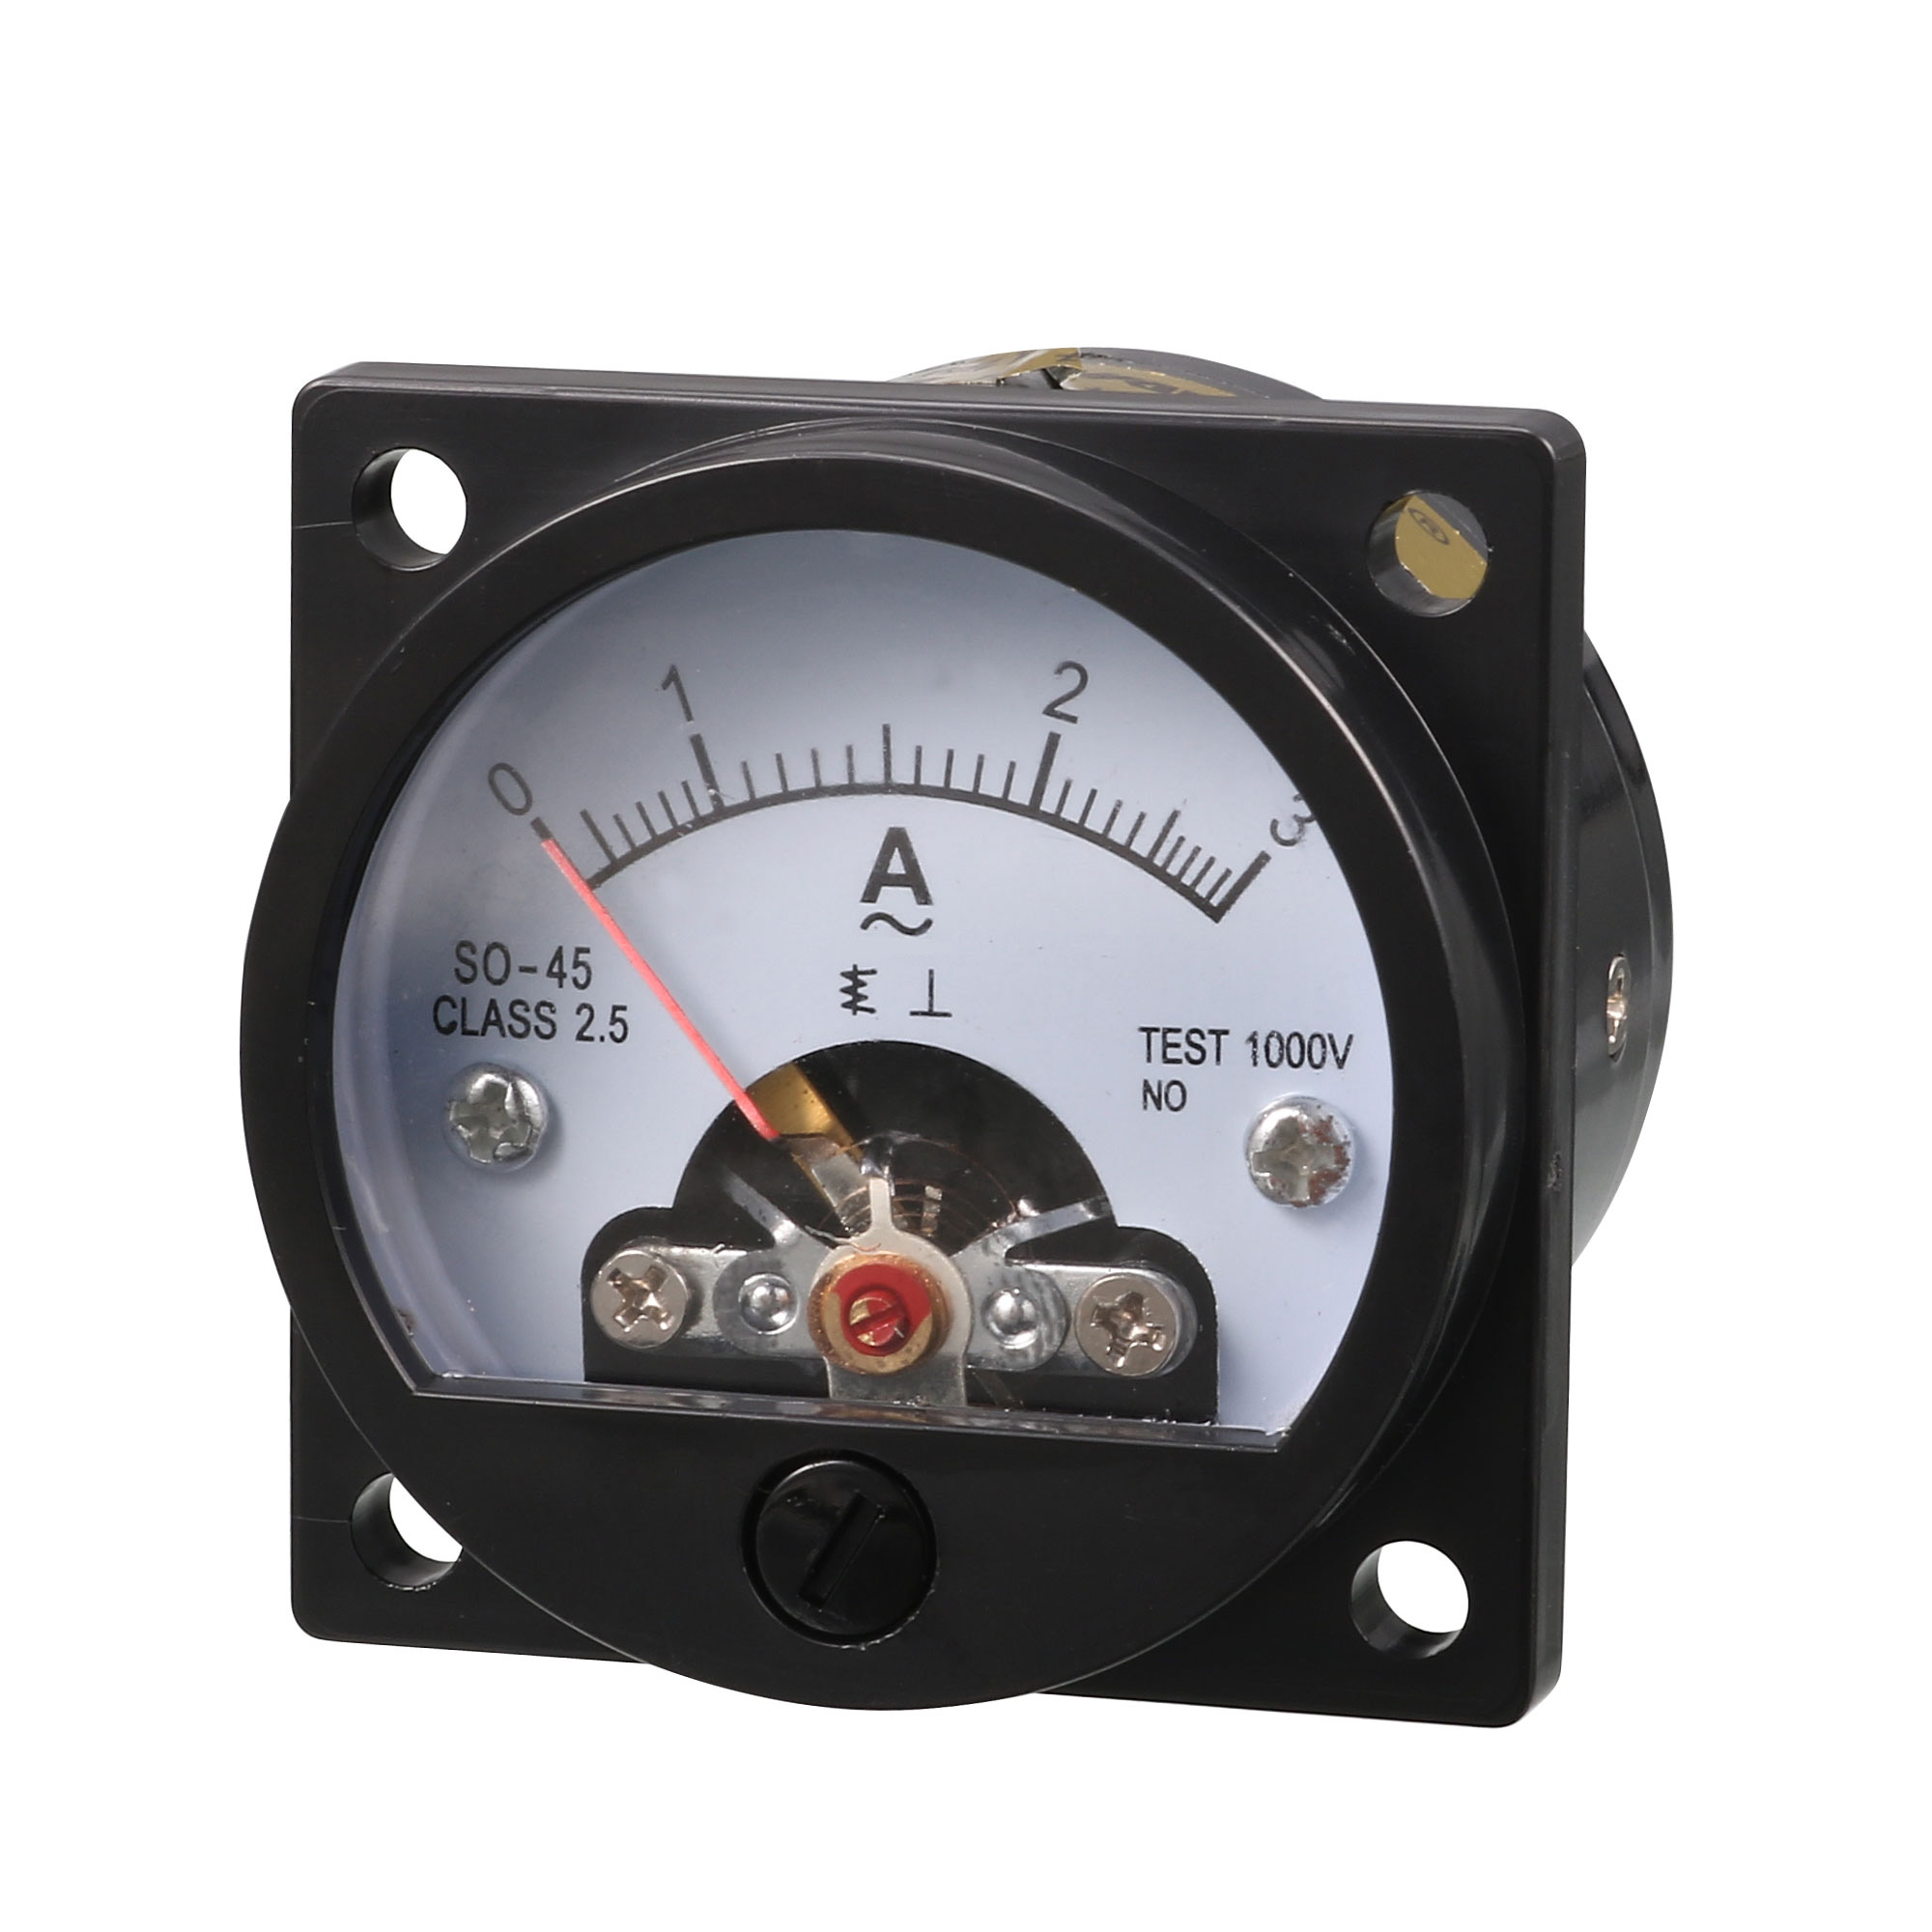 AC 0-3A Round Analog Panel Meter Current Measuring Ammeter Gauge Black